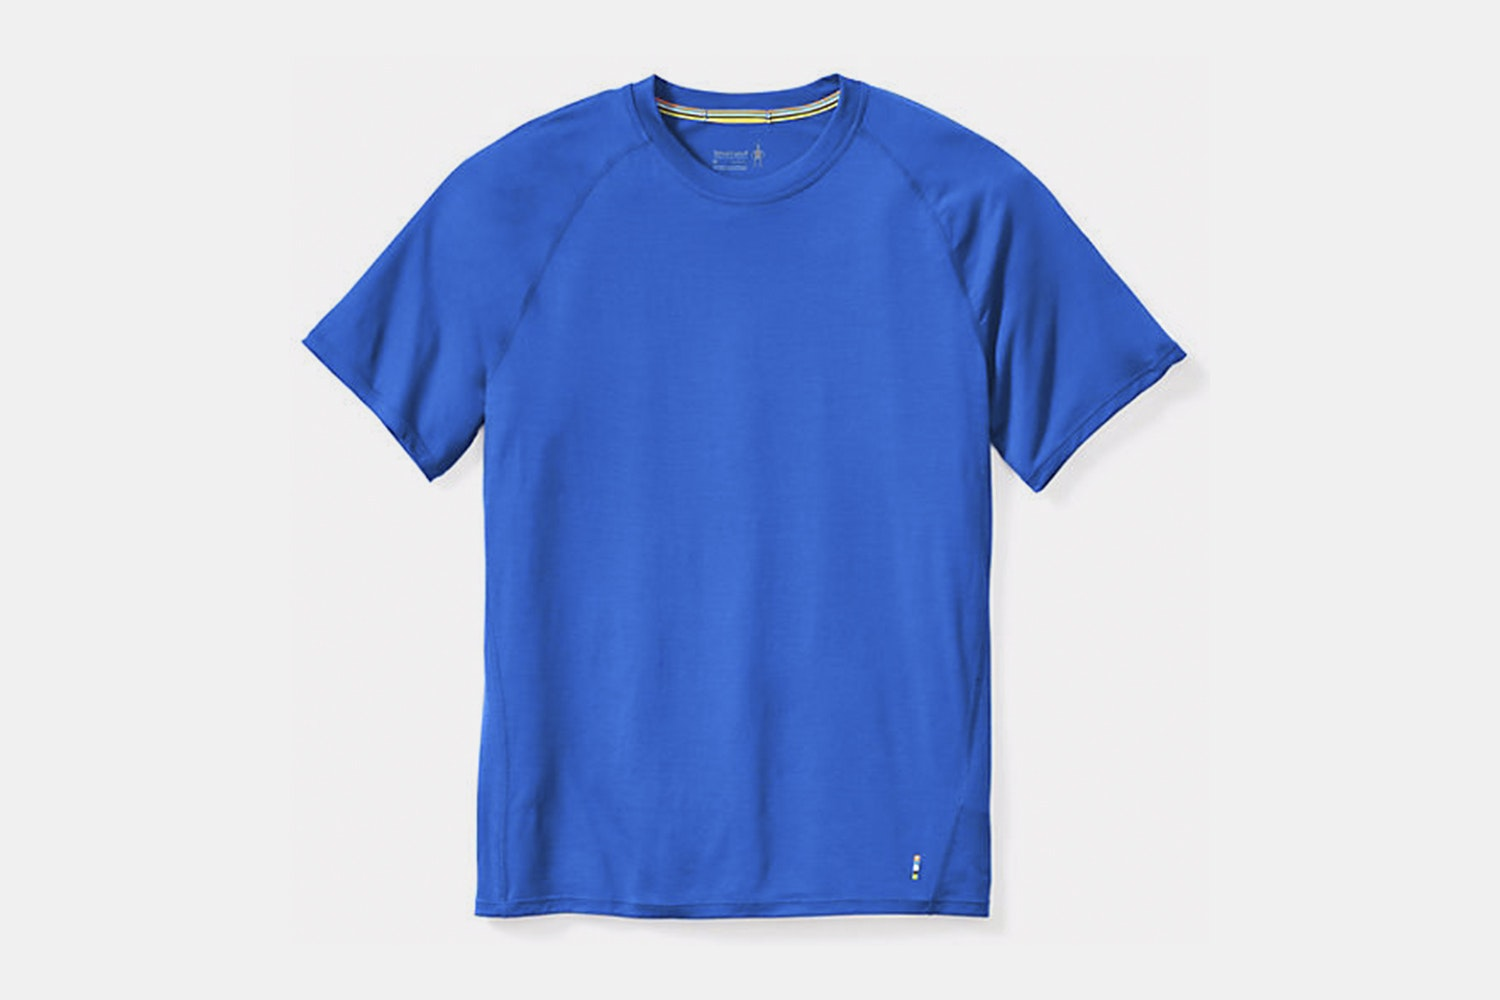 Men's – Bright Blue